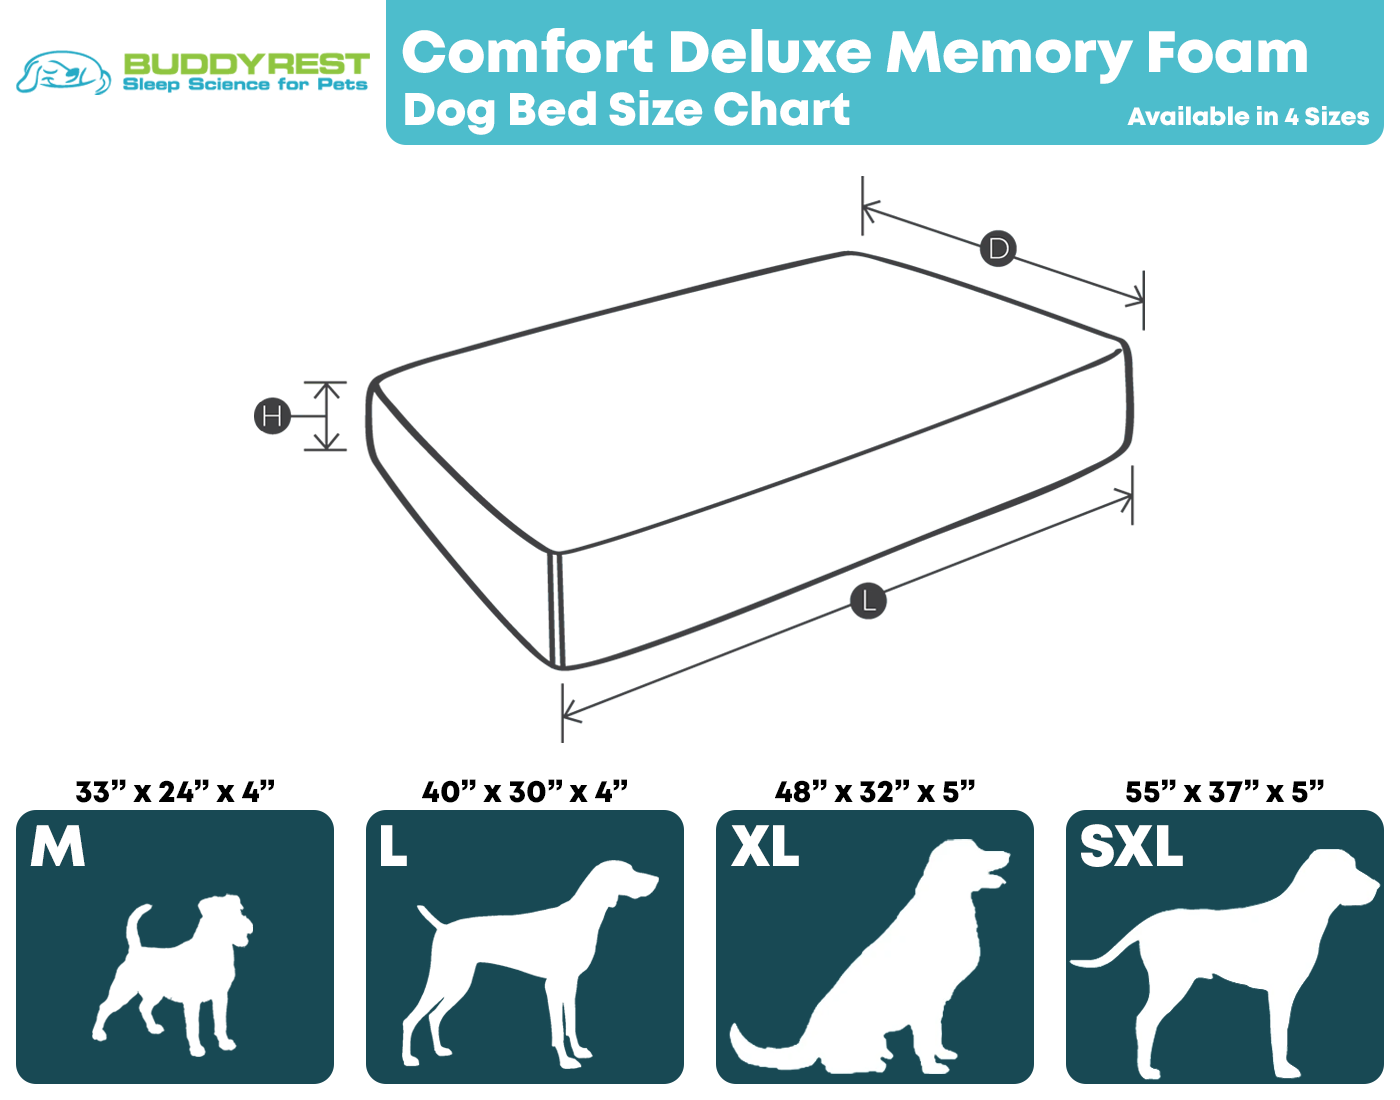 Comfort Deluxe Dog Bed Size Chart